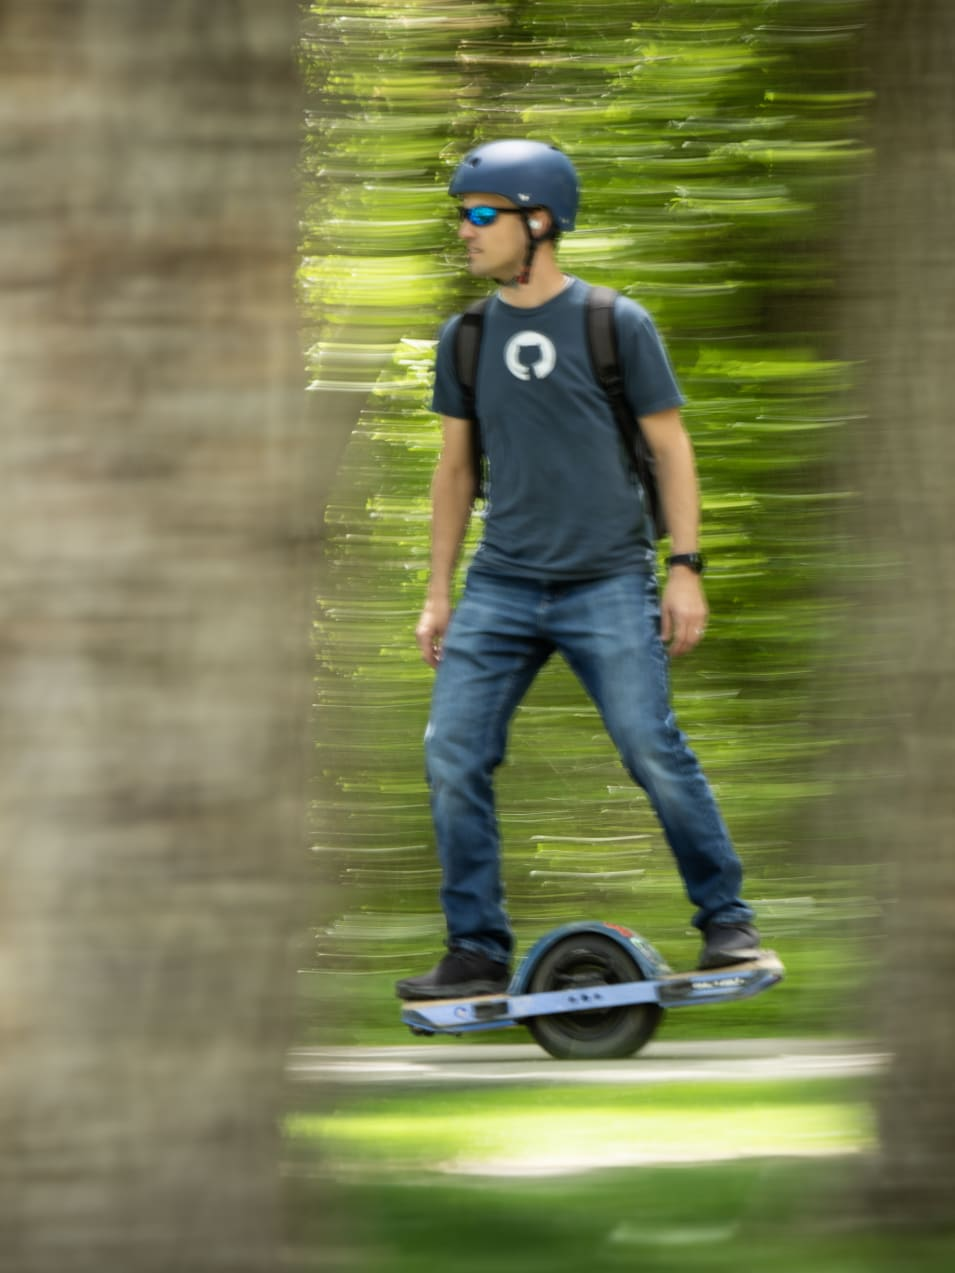 Kent riding on a onewheel in the outdoors